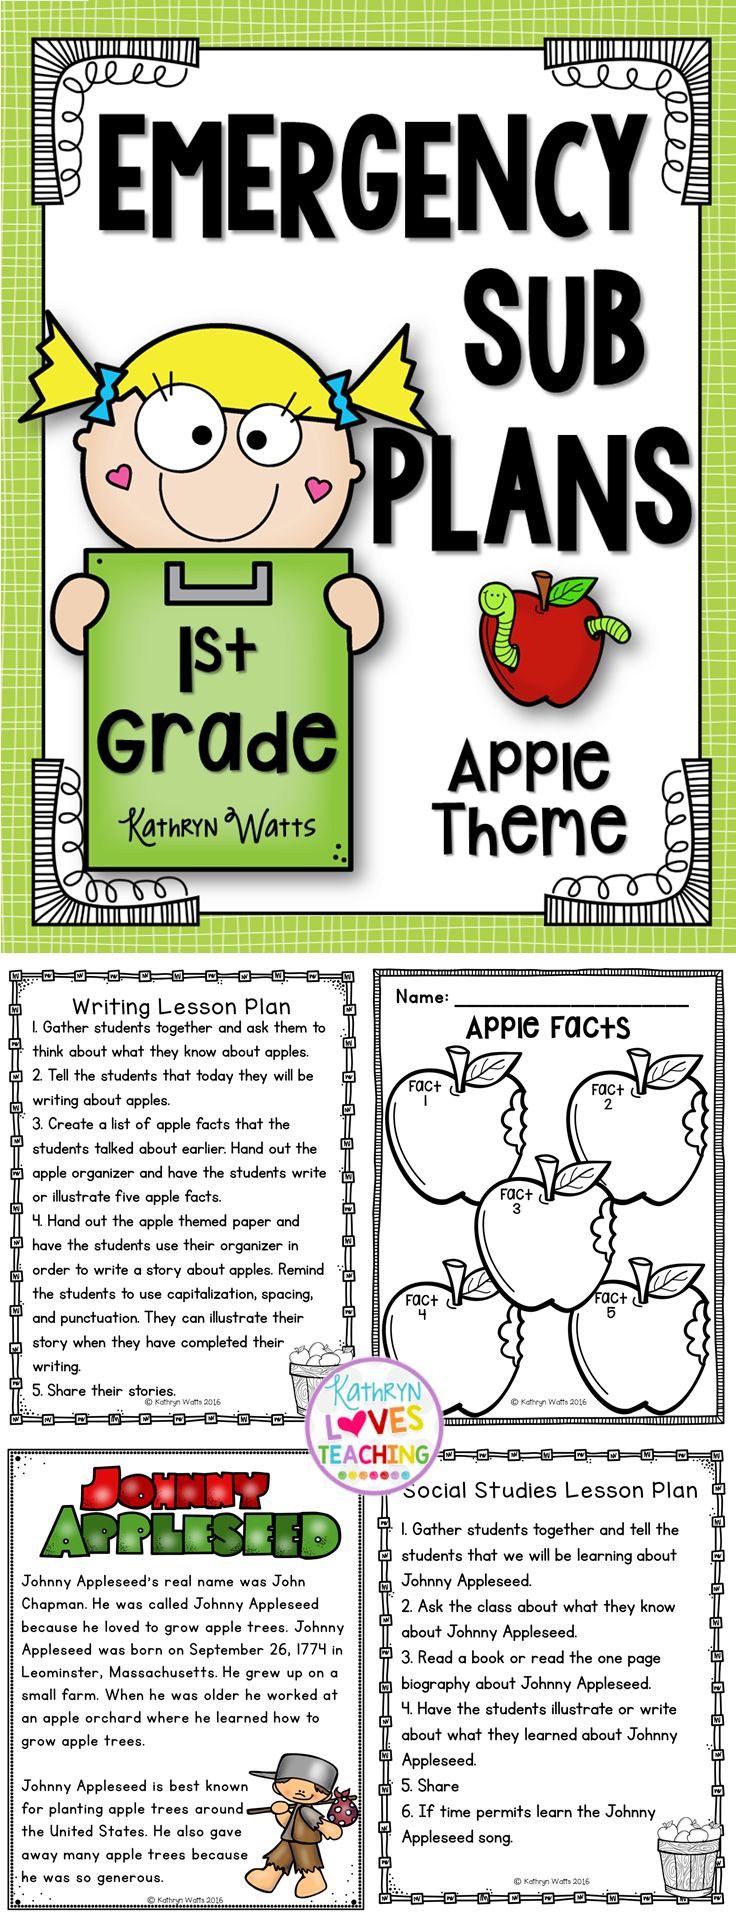 1st Grade Emergency Sub Plans Apple Theme  Here are Emergency Sub plans when you have to call out unexpectedly. These Emergency Sub Plans includes lesson plans and practice sheets for an entire day to keep your students busy and having fun. All you need to do is print and copy.